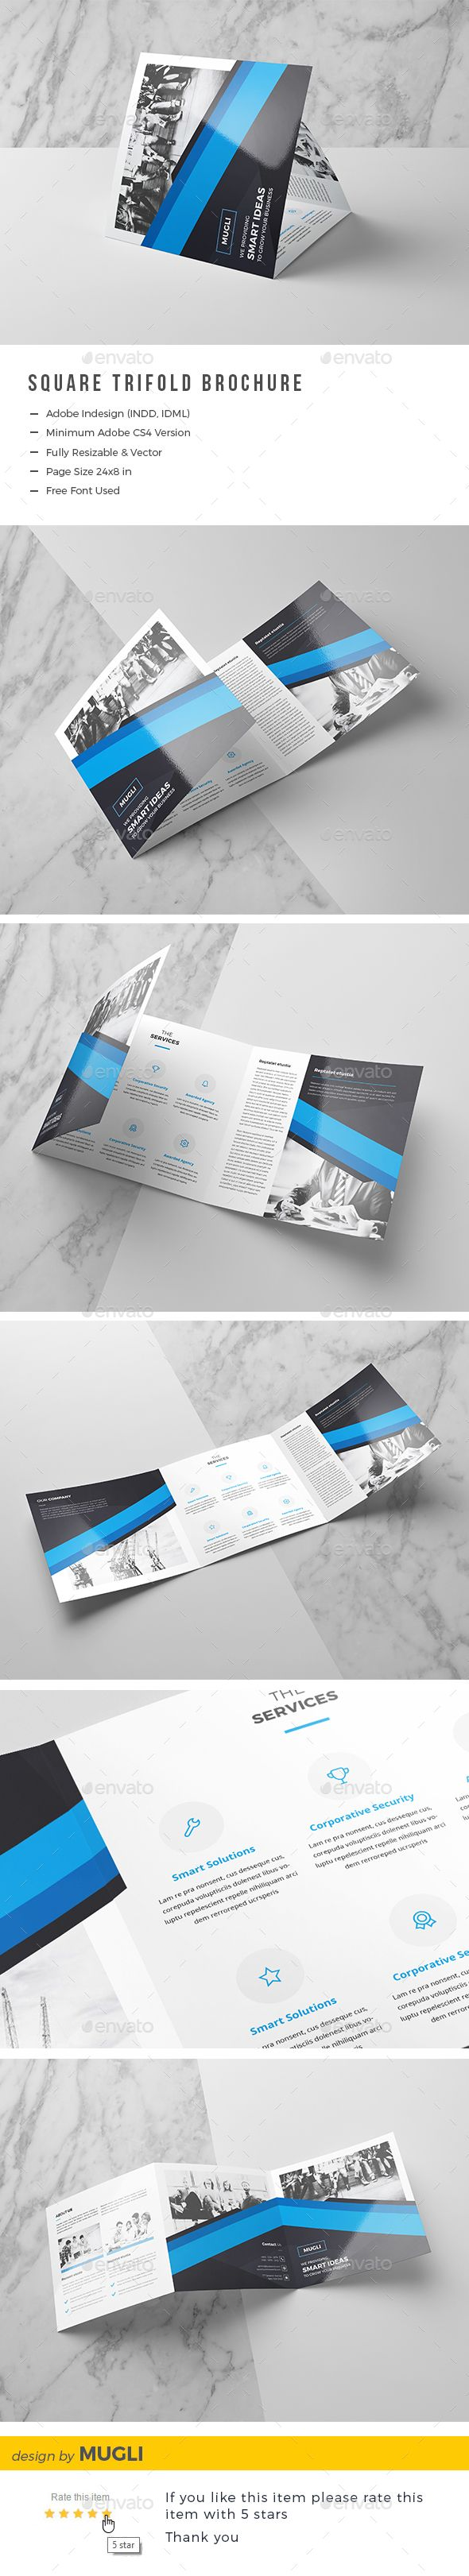 square trifold brochure pinterest brochures brochure template